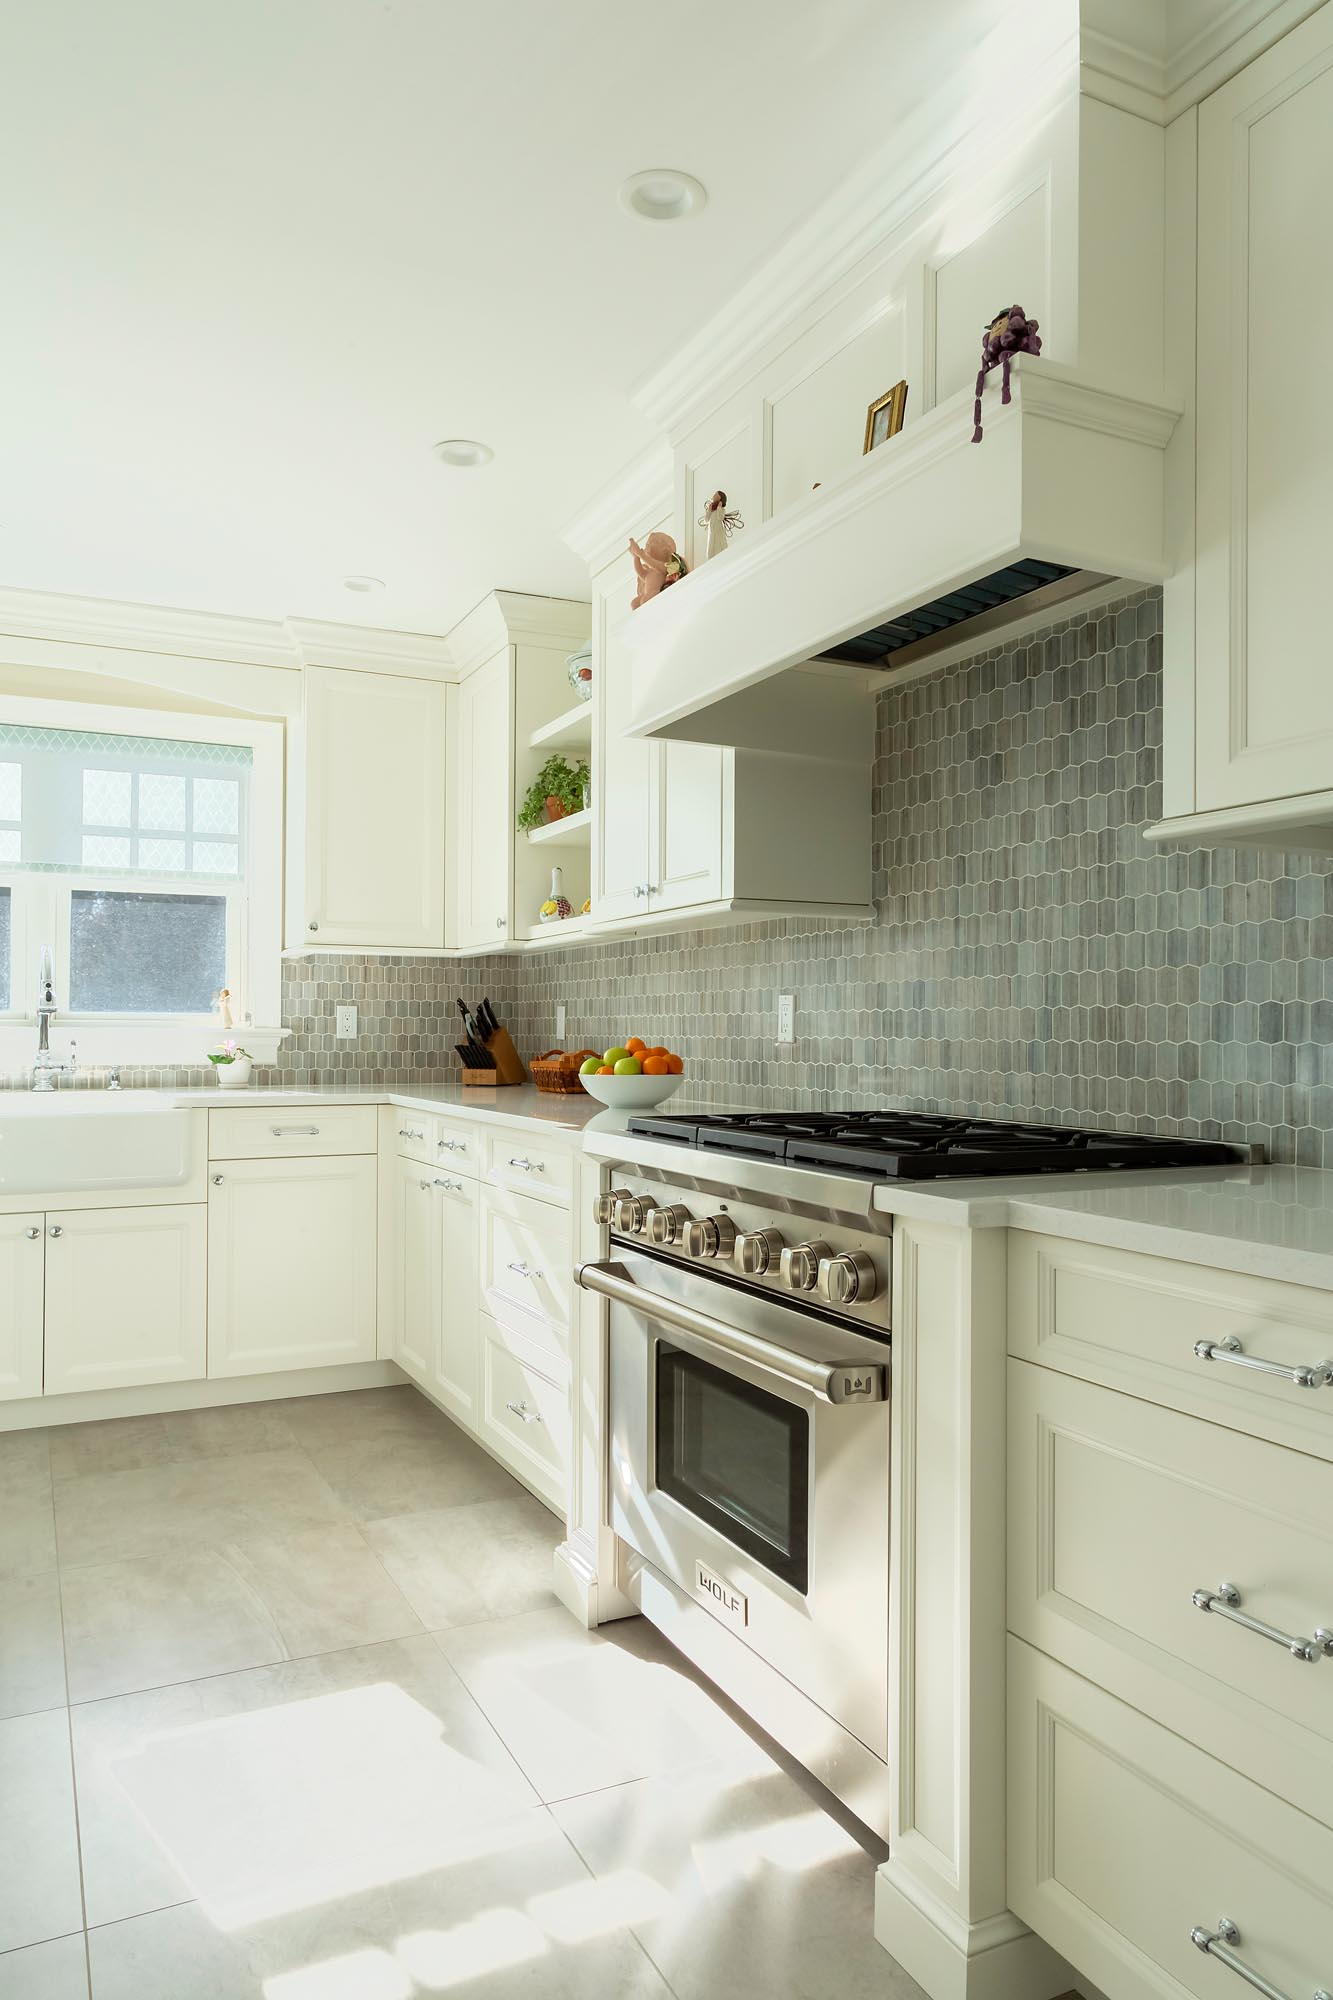 Transitional white kitchen with mantle hood and Wolf range